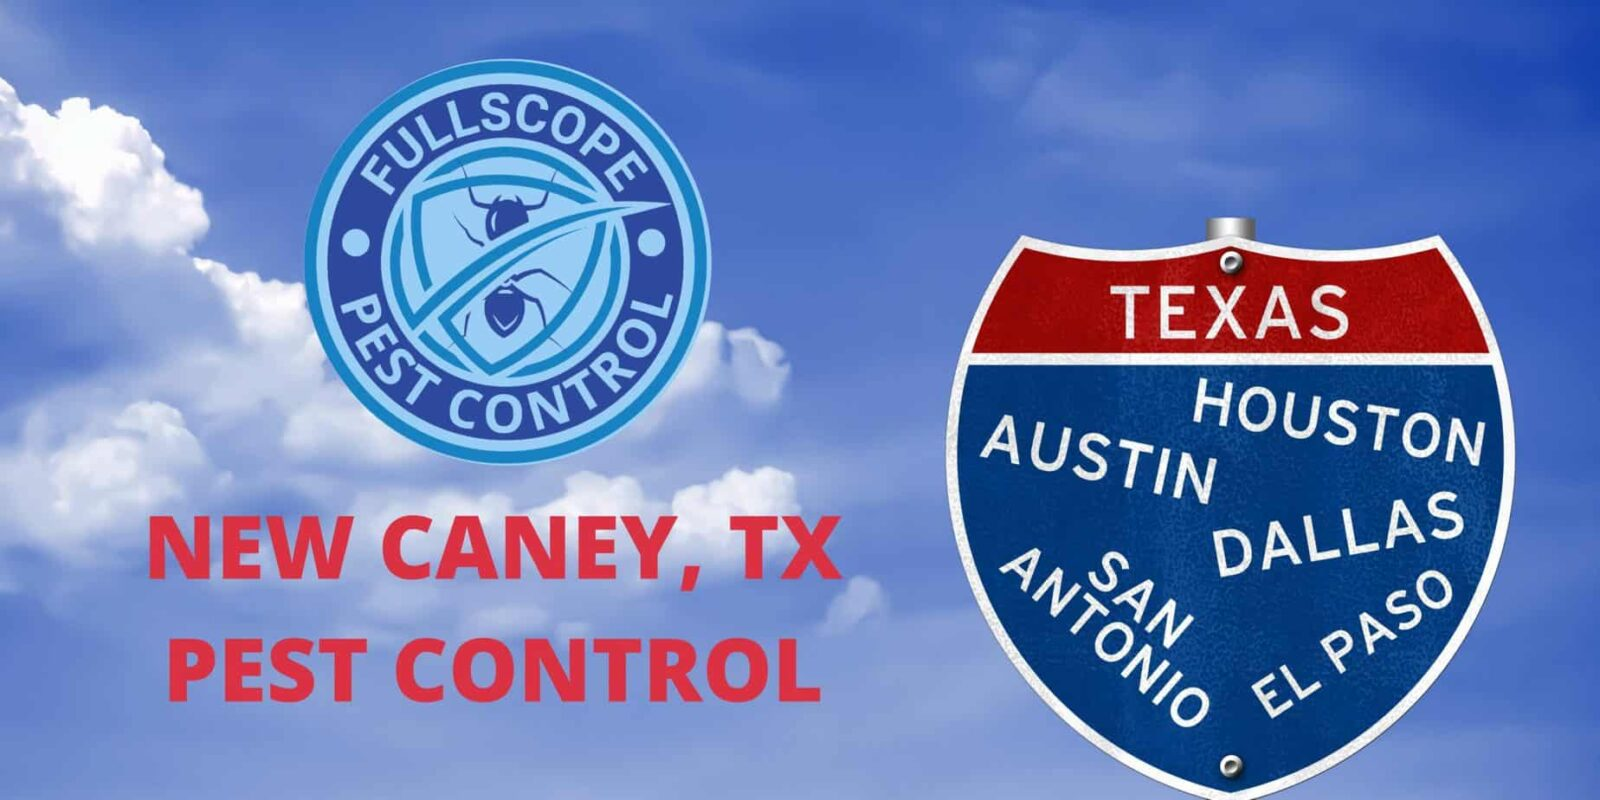 Commercial Pest Control New Caney | FullScope